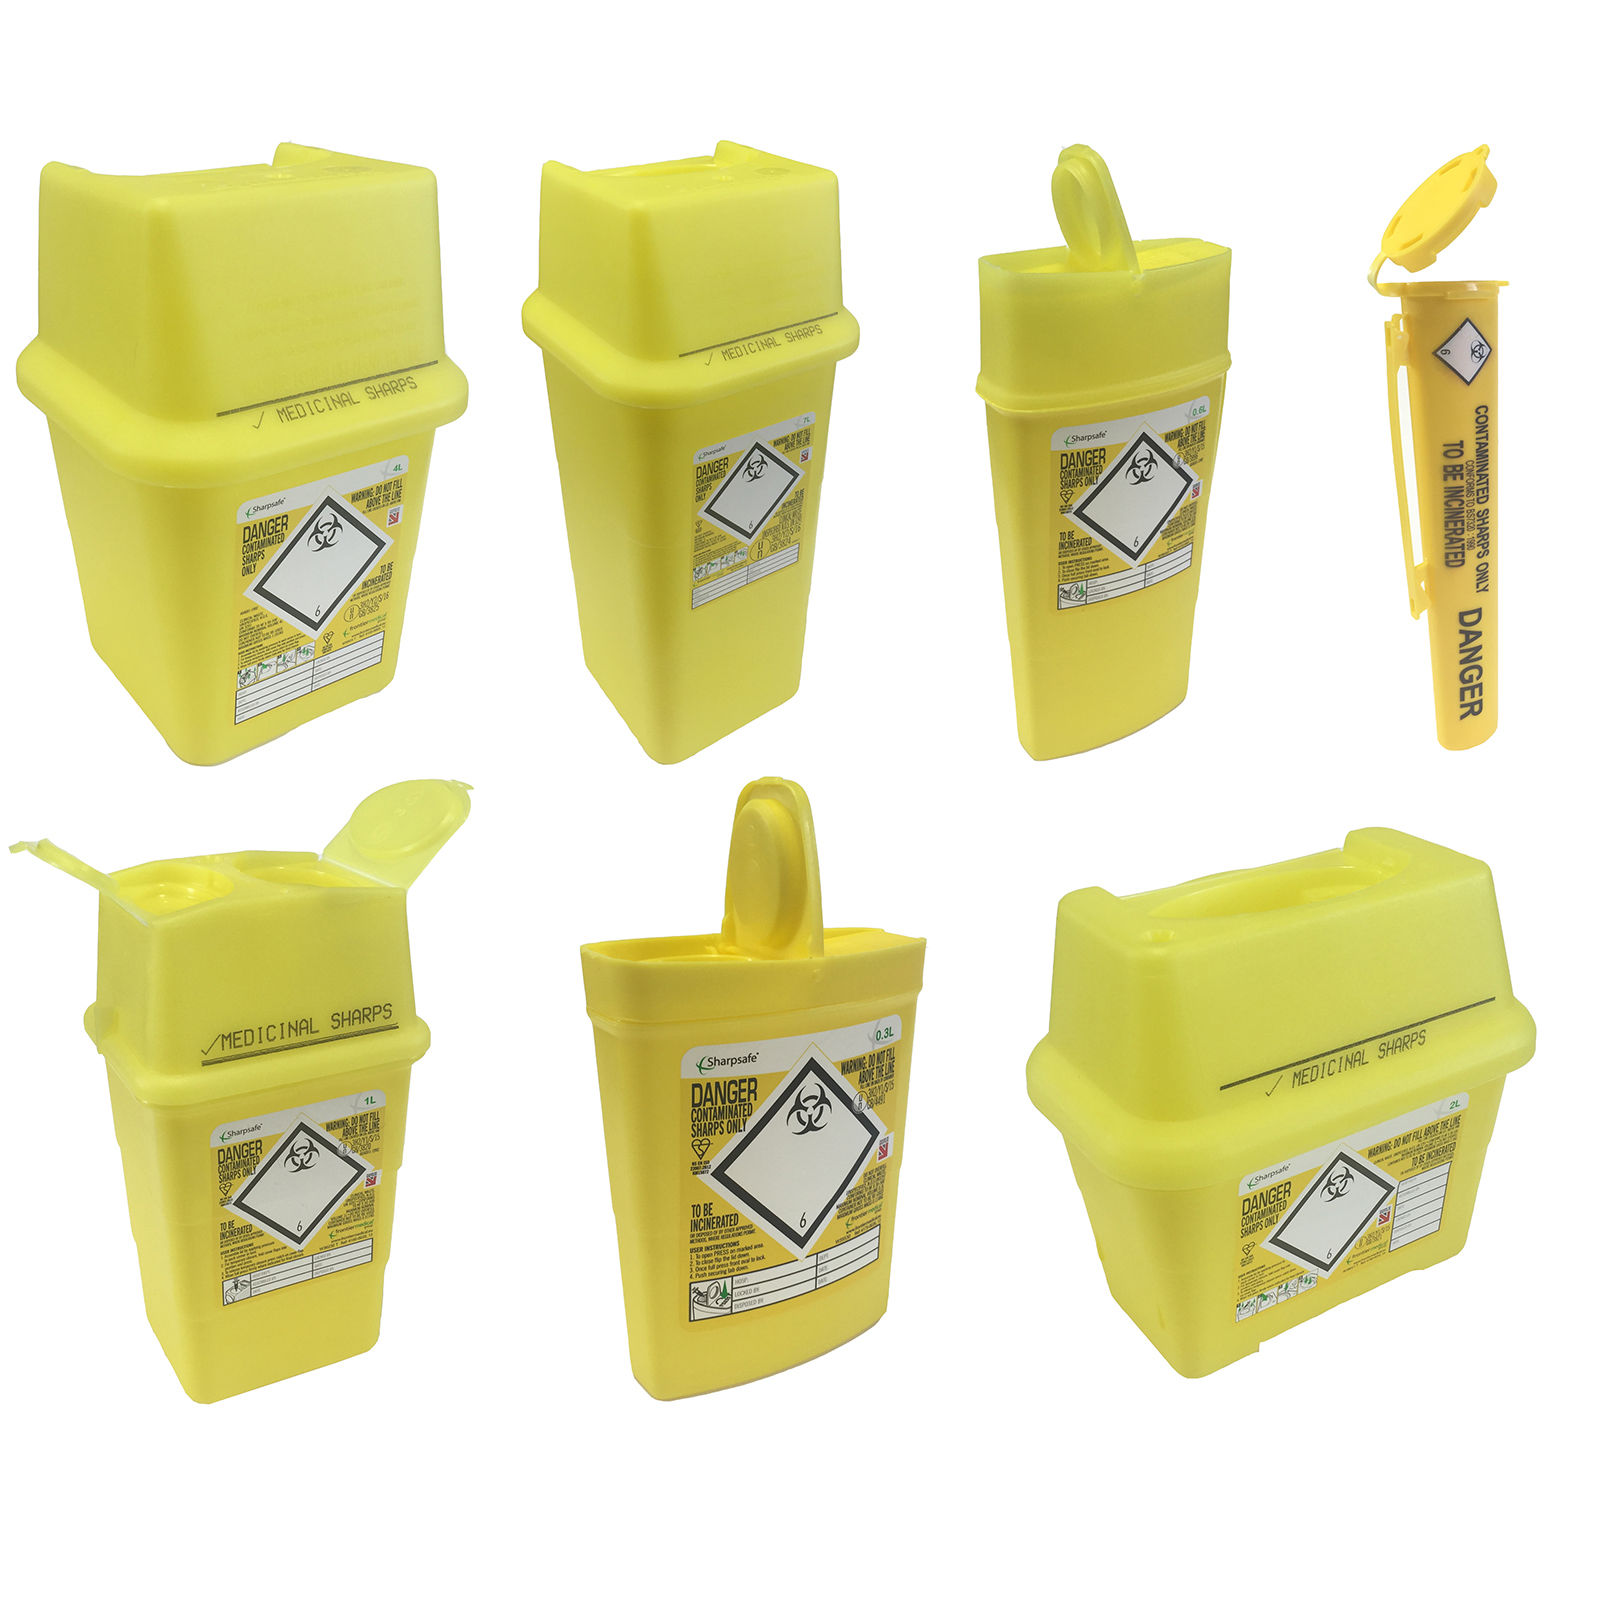 Sharpsafe Yellow Bio Hazard Blade Syringe Needle Clinical